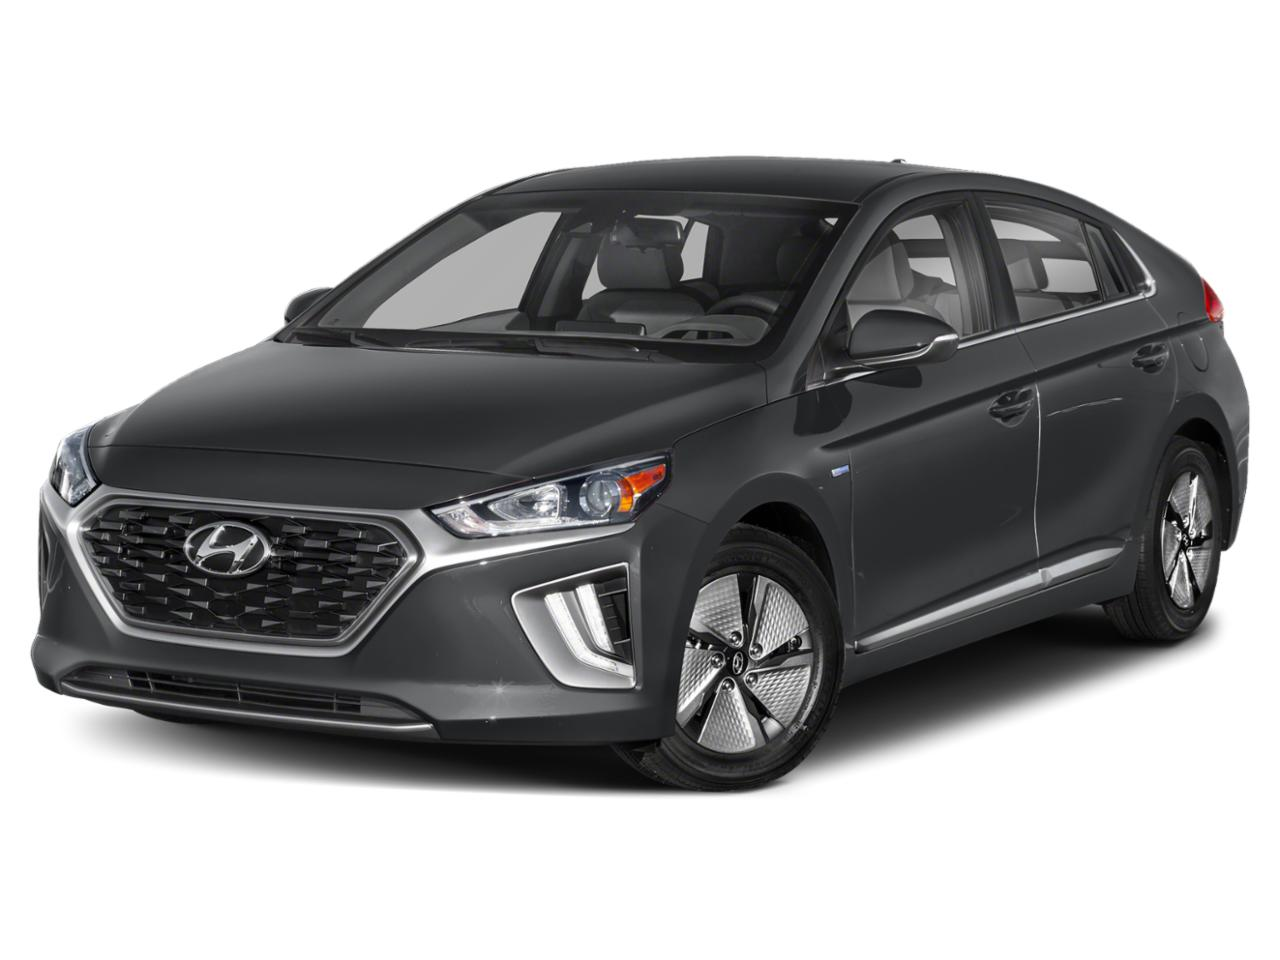 2020 Hyundai IONIQ Hybrid Vehicle Photo in Peoria, IL 61615